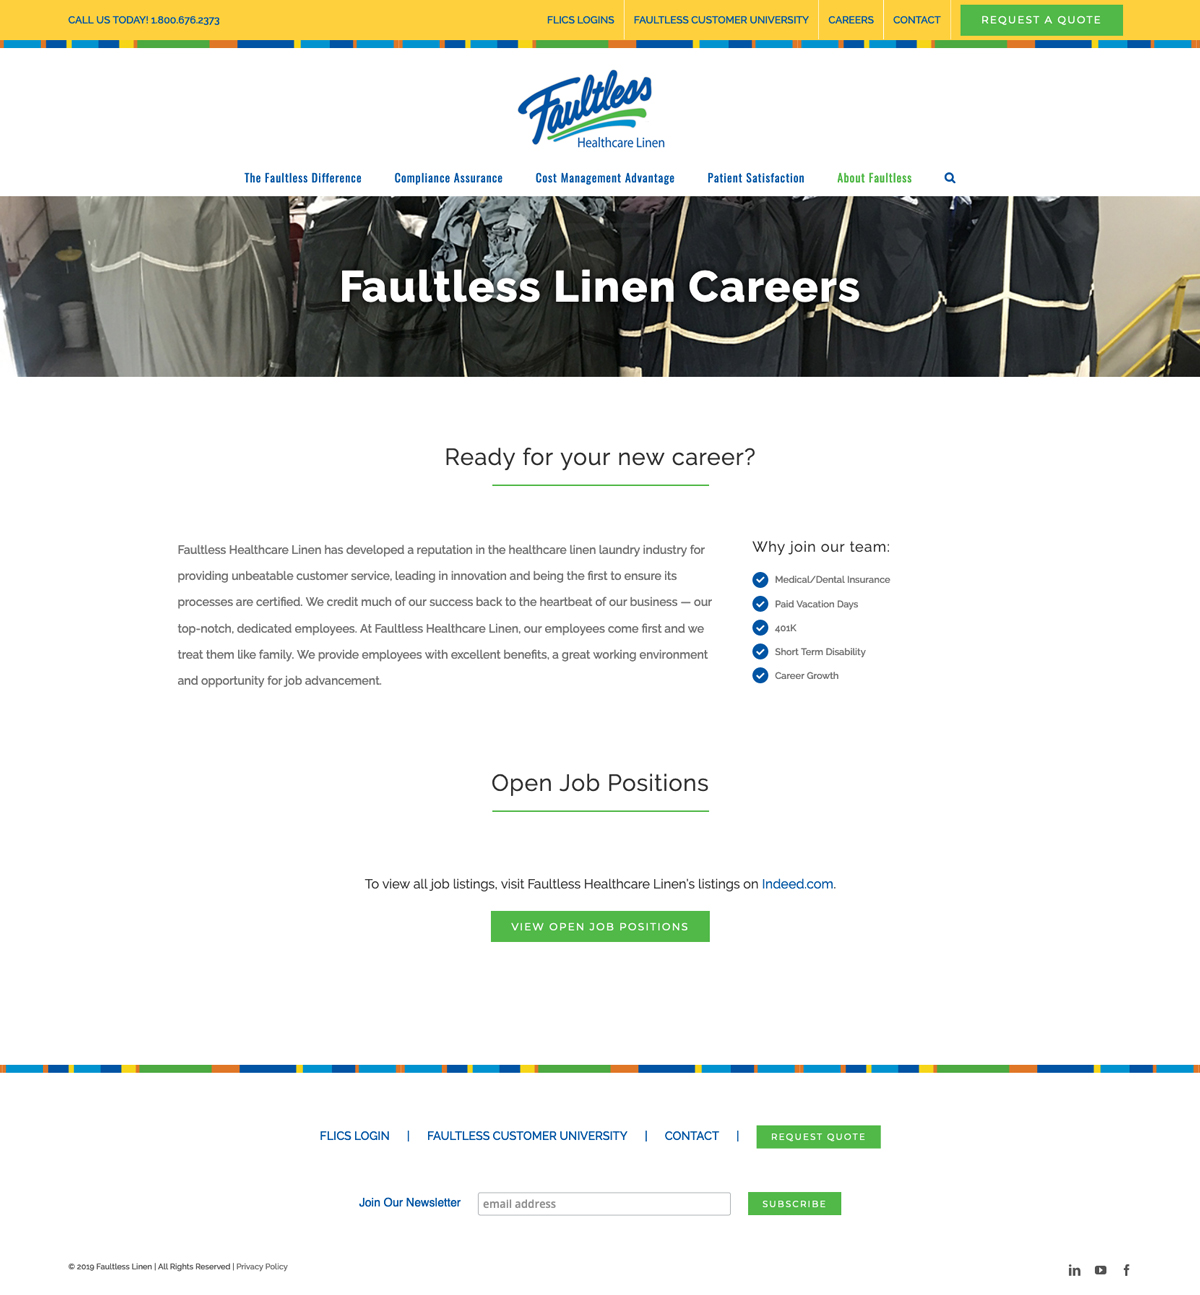 Company Website Design for Faultless Healthcare Linen - Careers Page